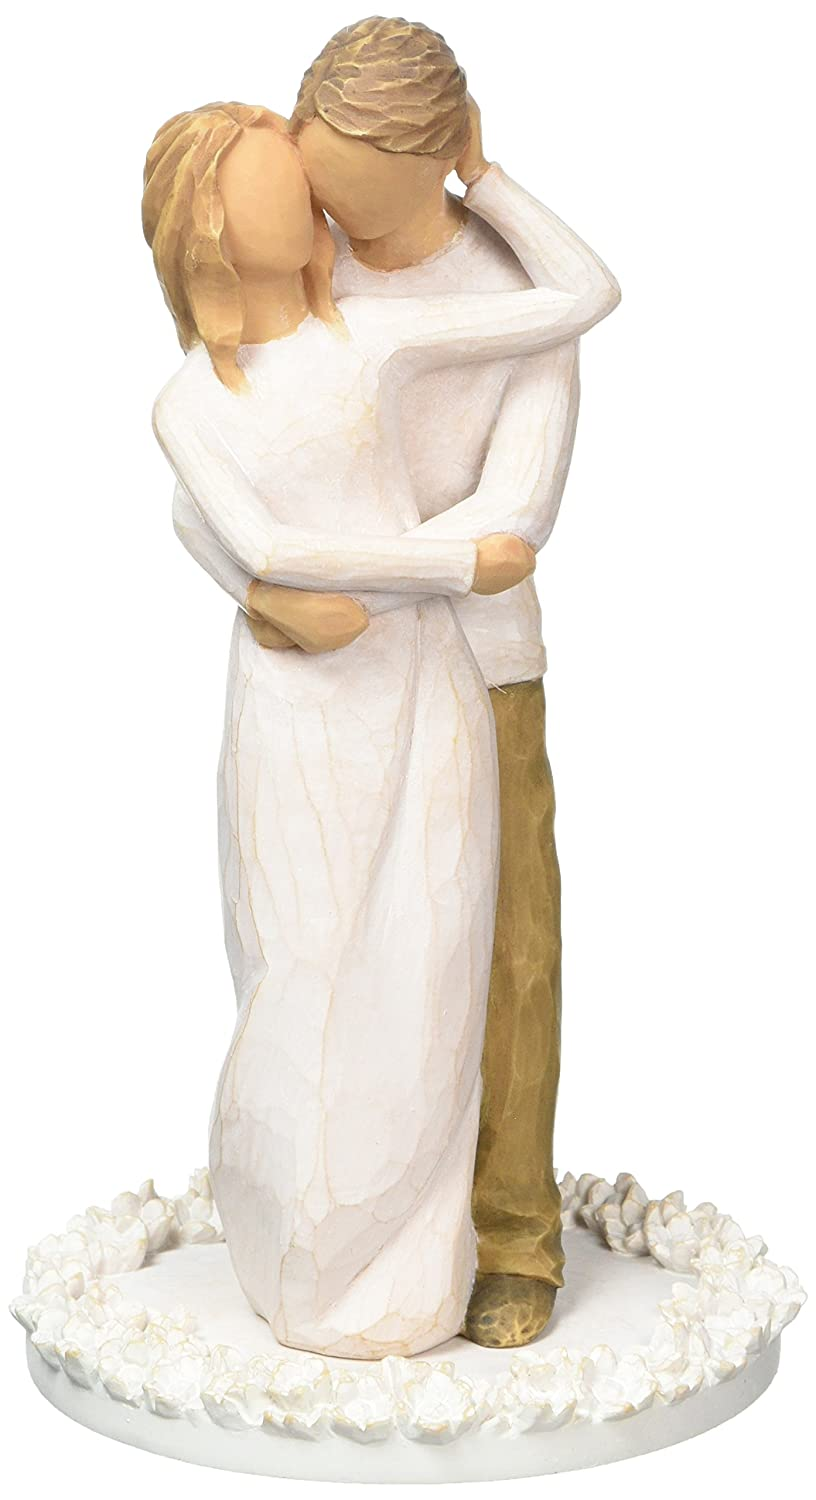 Willow Tree Wedding Bride and Groom Cake Topper, Together